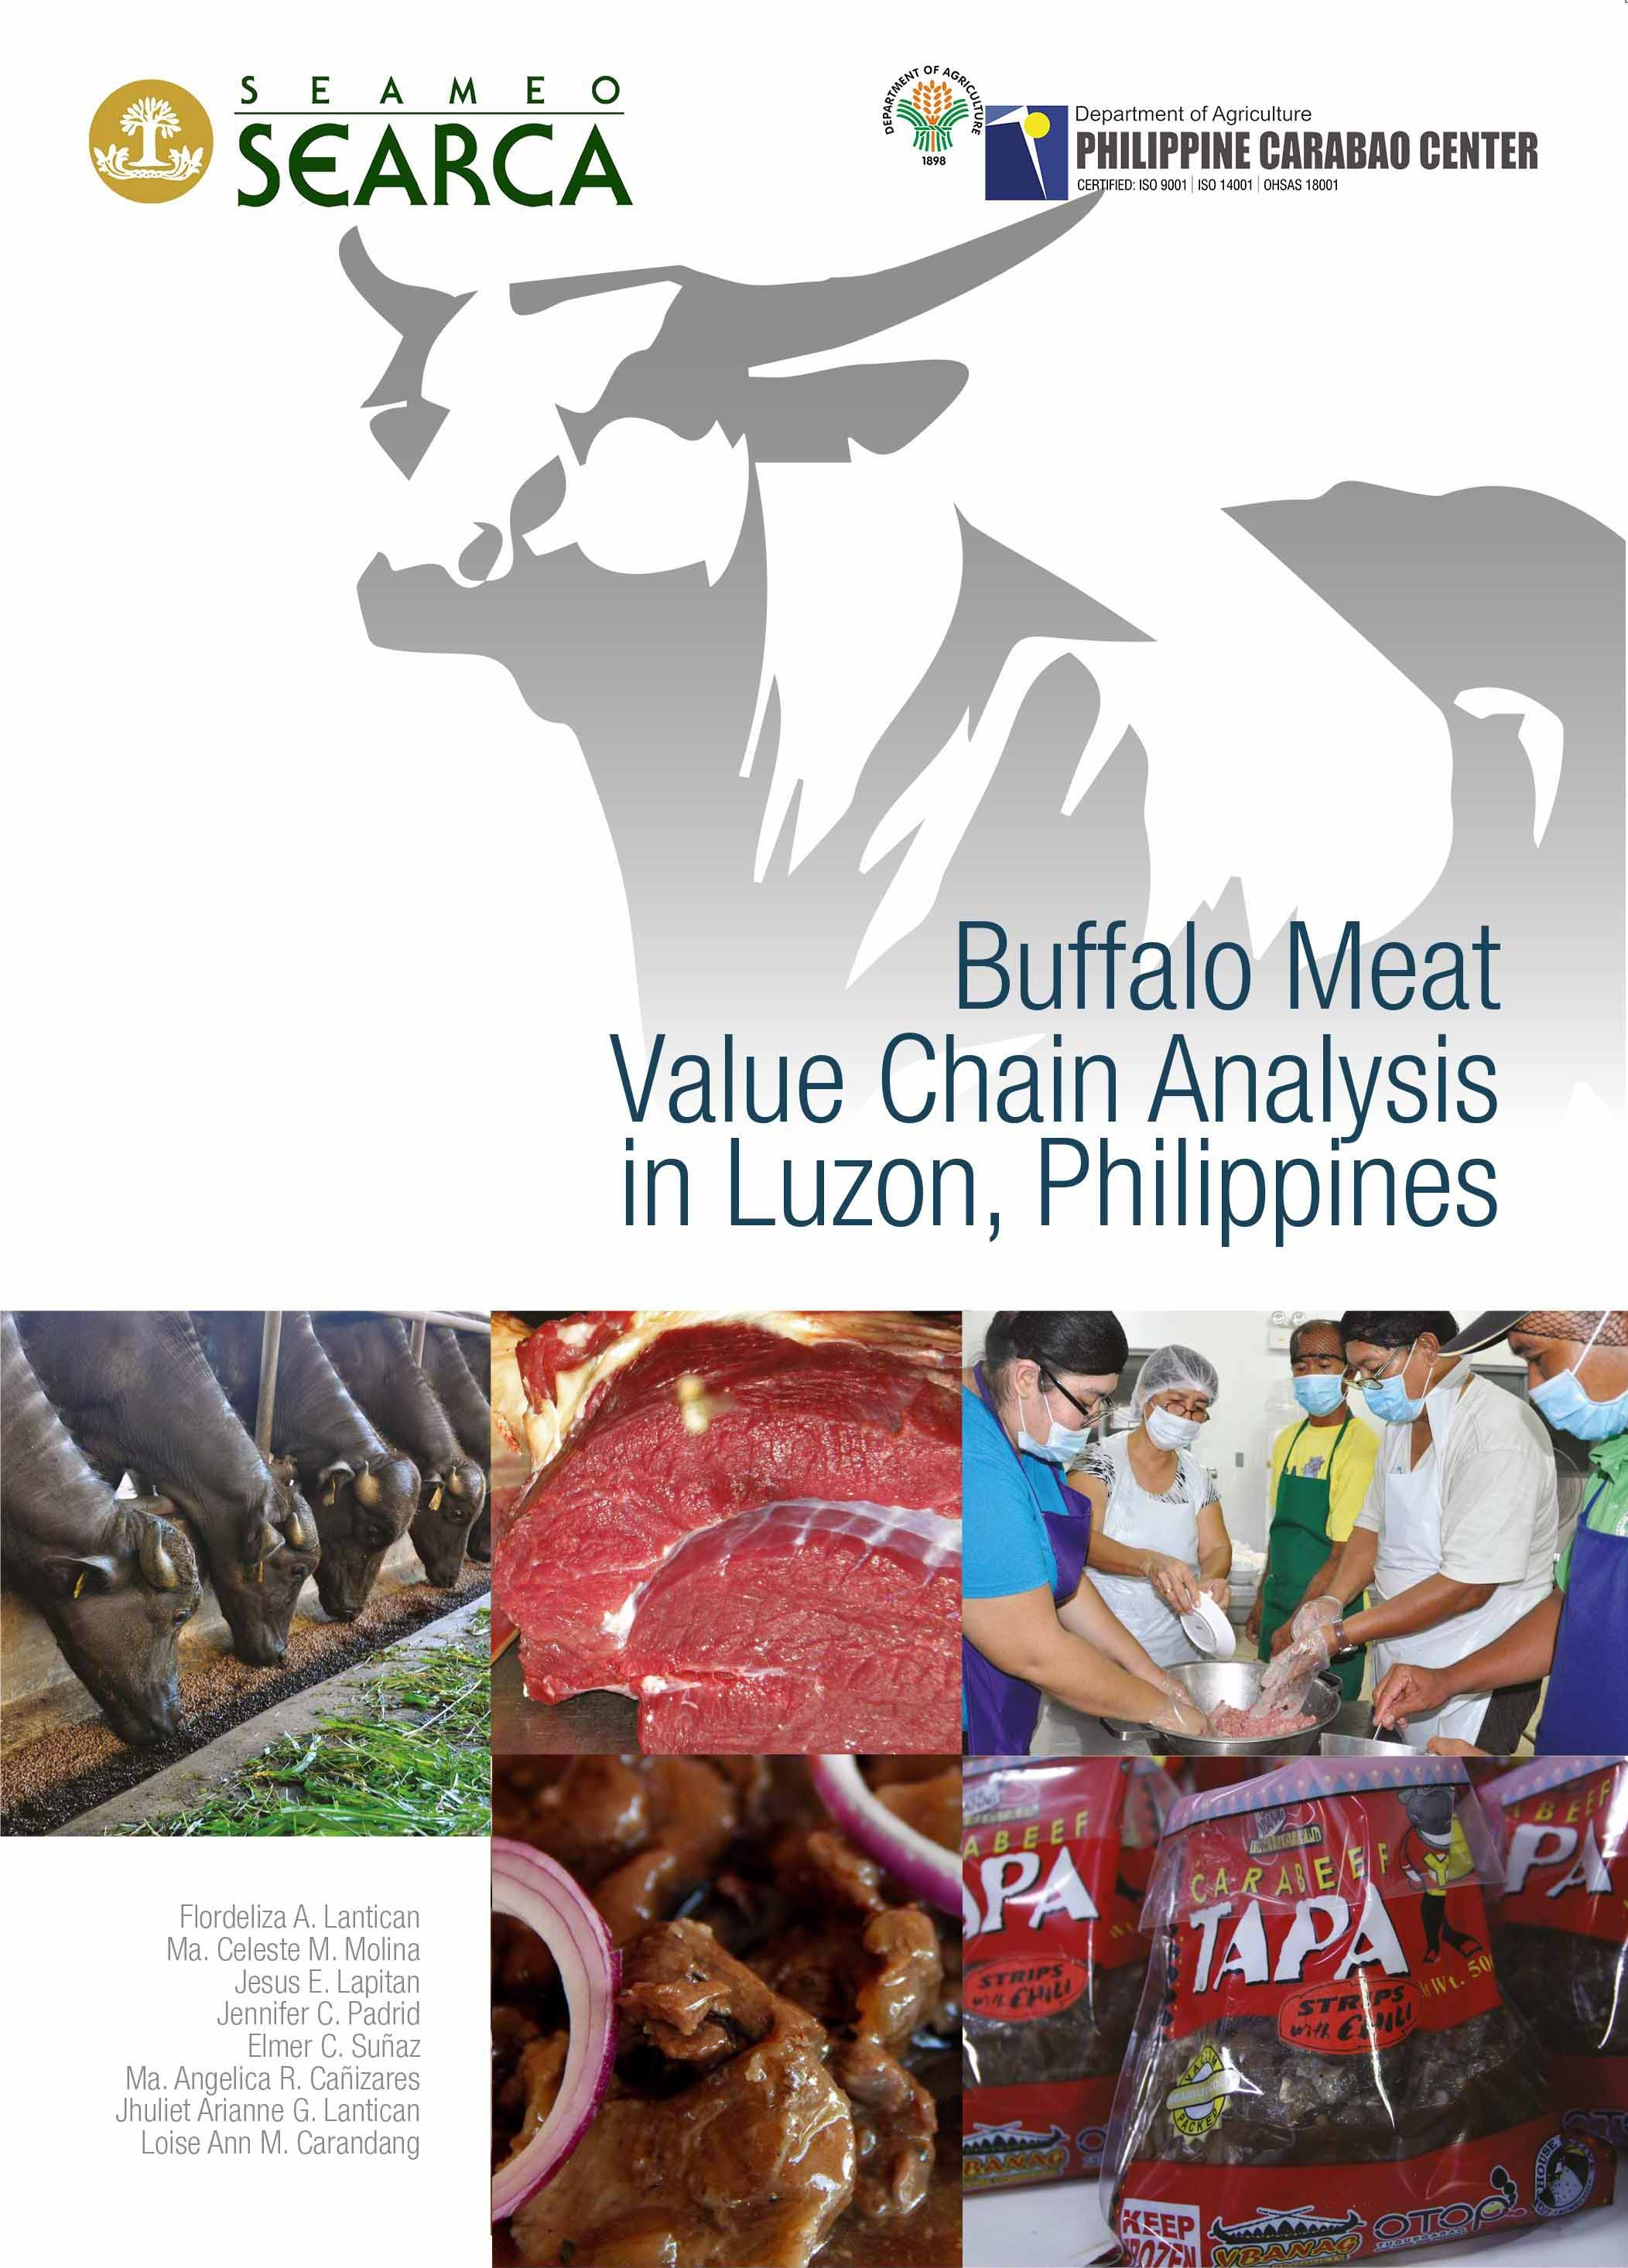 Buffalo Meat Value Chain Analysis in Luzon, Philippines